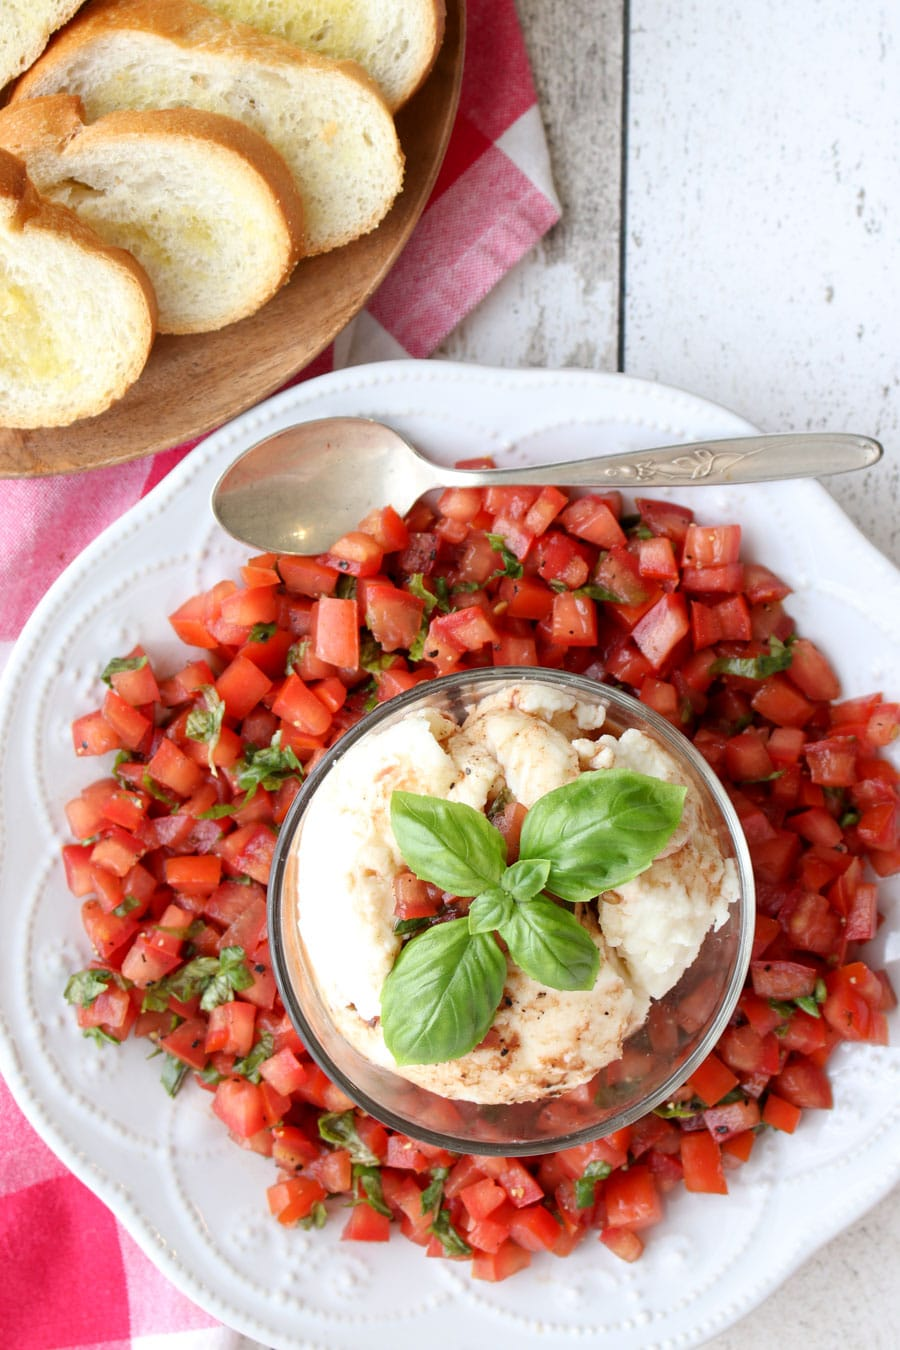 a platter of bruschetta with mozzarella cheese and toast on the side